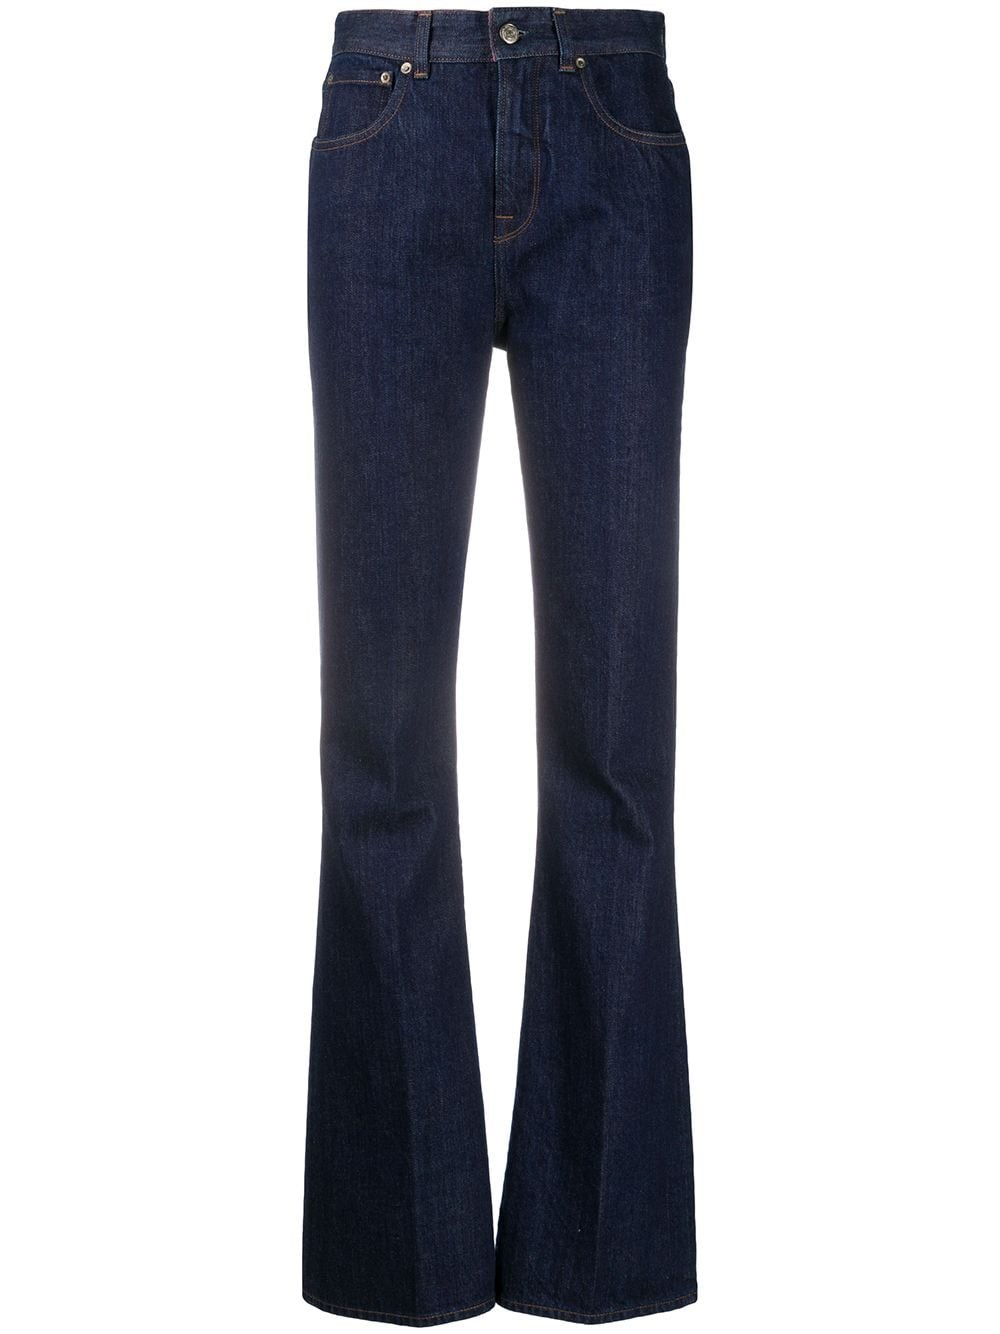 GOLDEN GOOSE DELUXE BRAND Bootcut Jeans